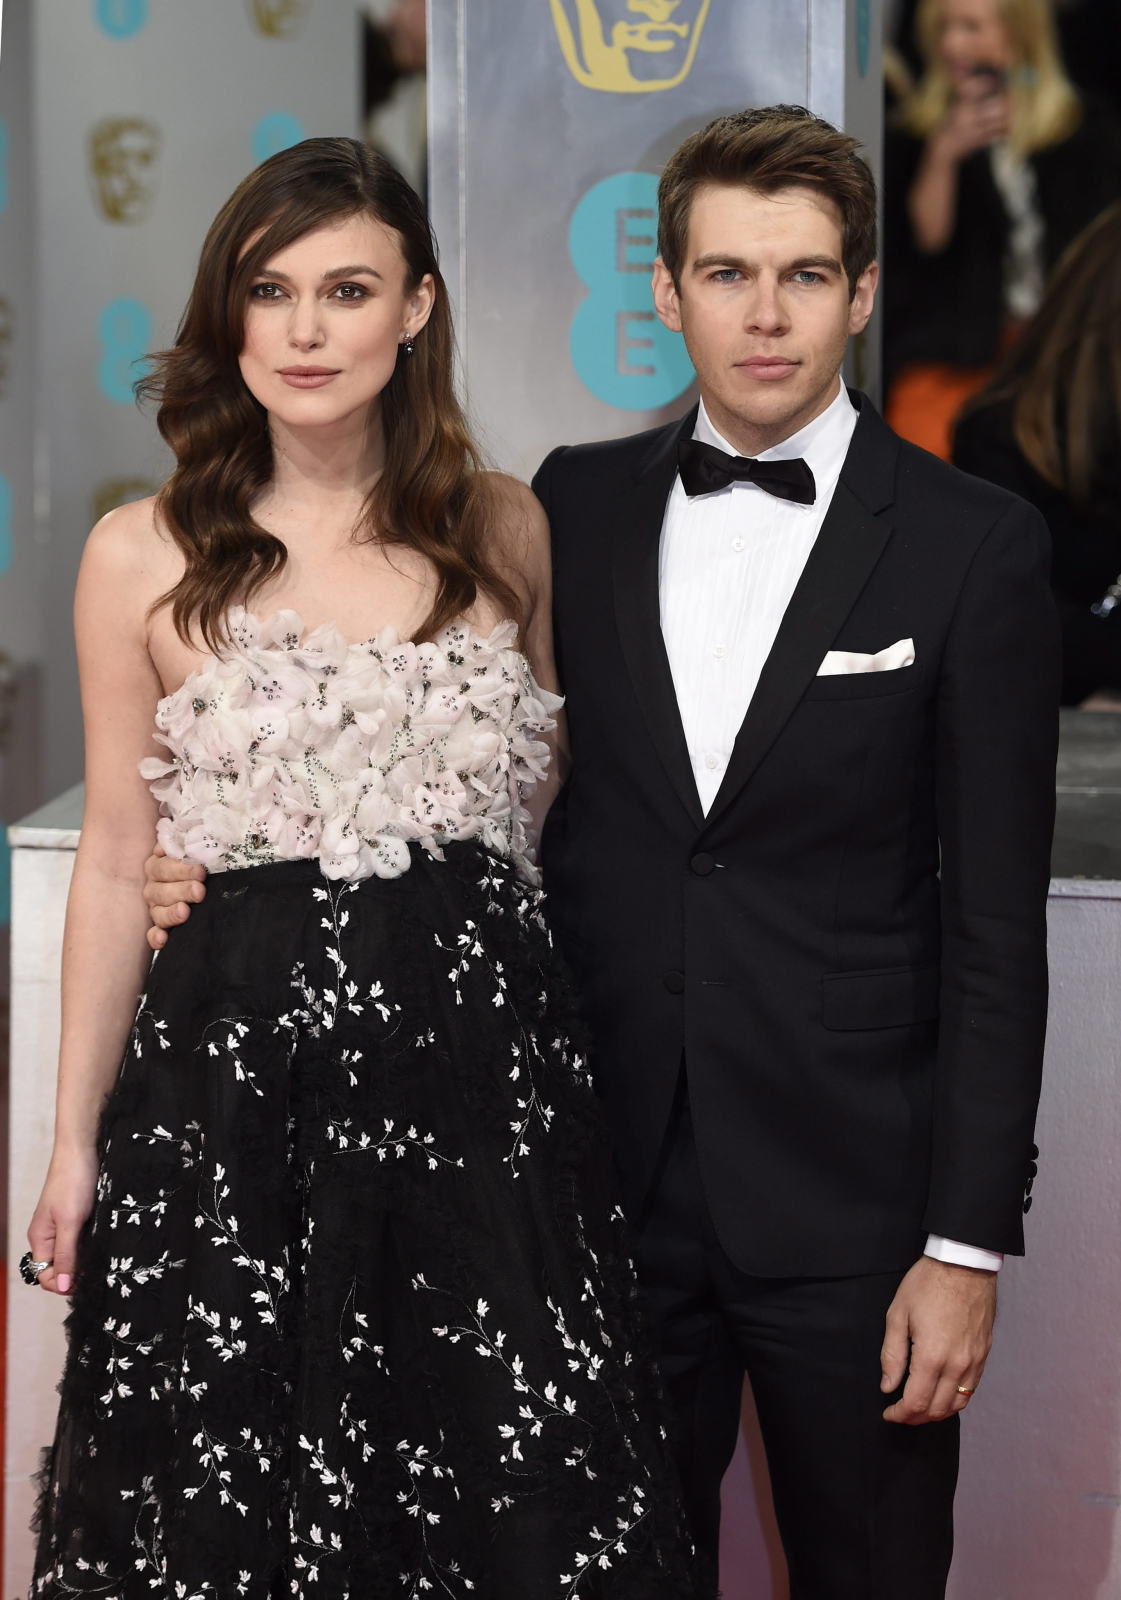 Keira Knightley i jej mąż James Righton na gali BAFTA 2015